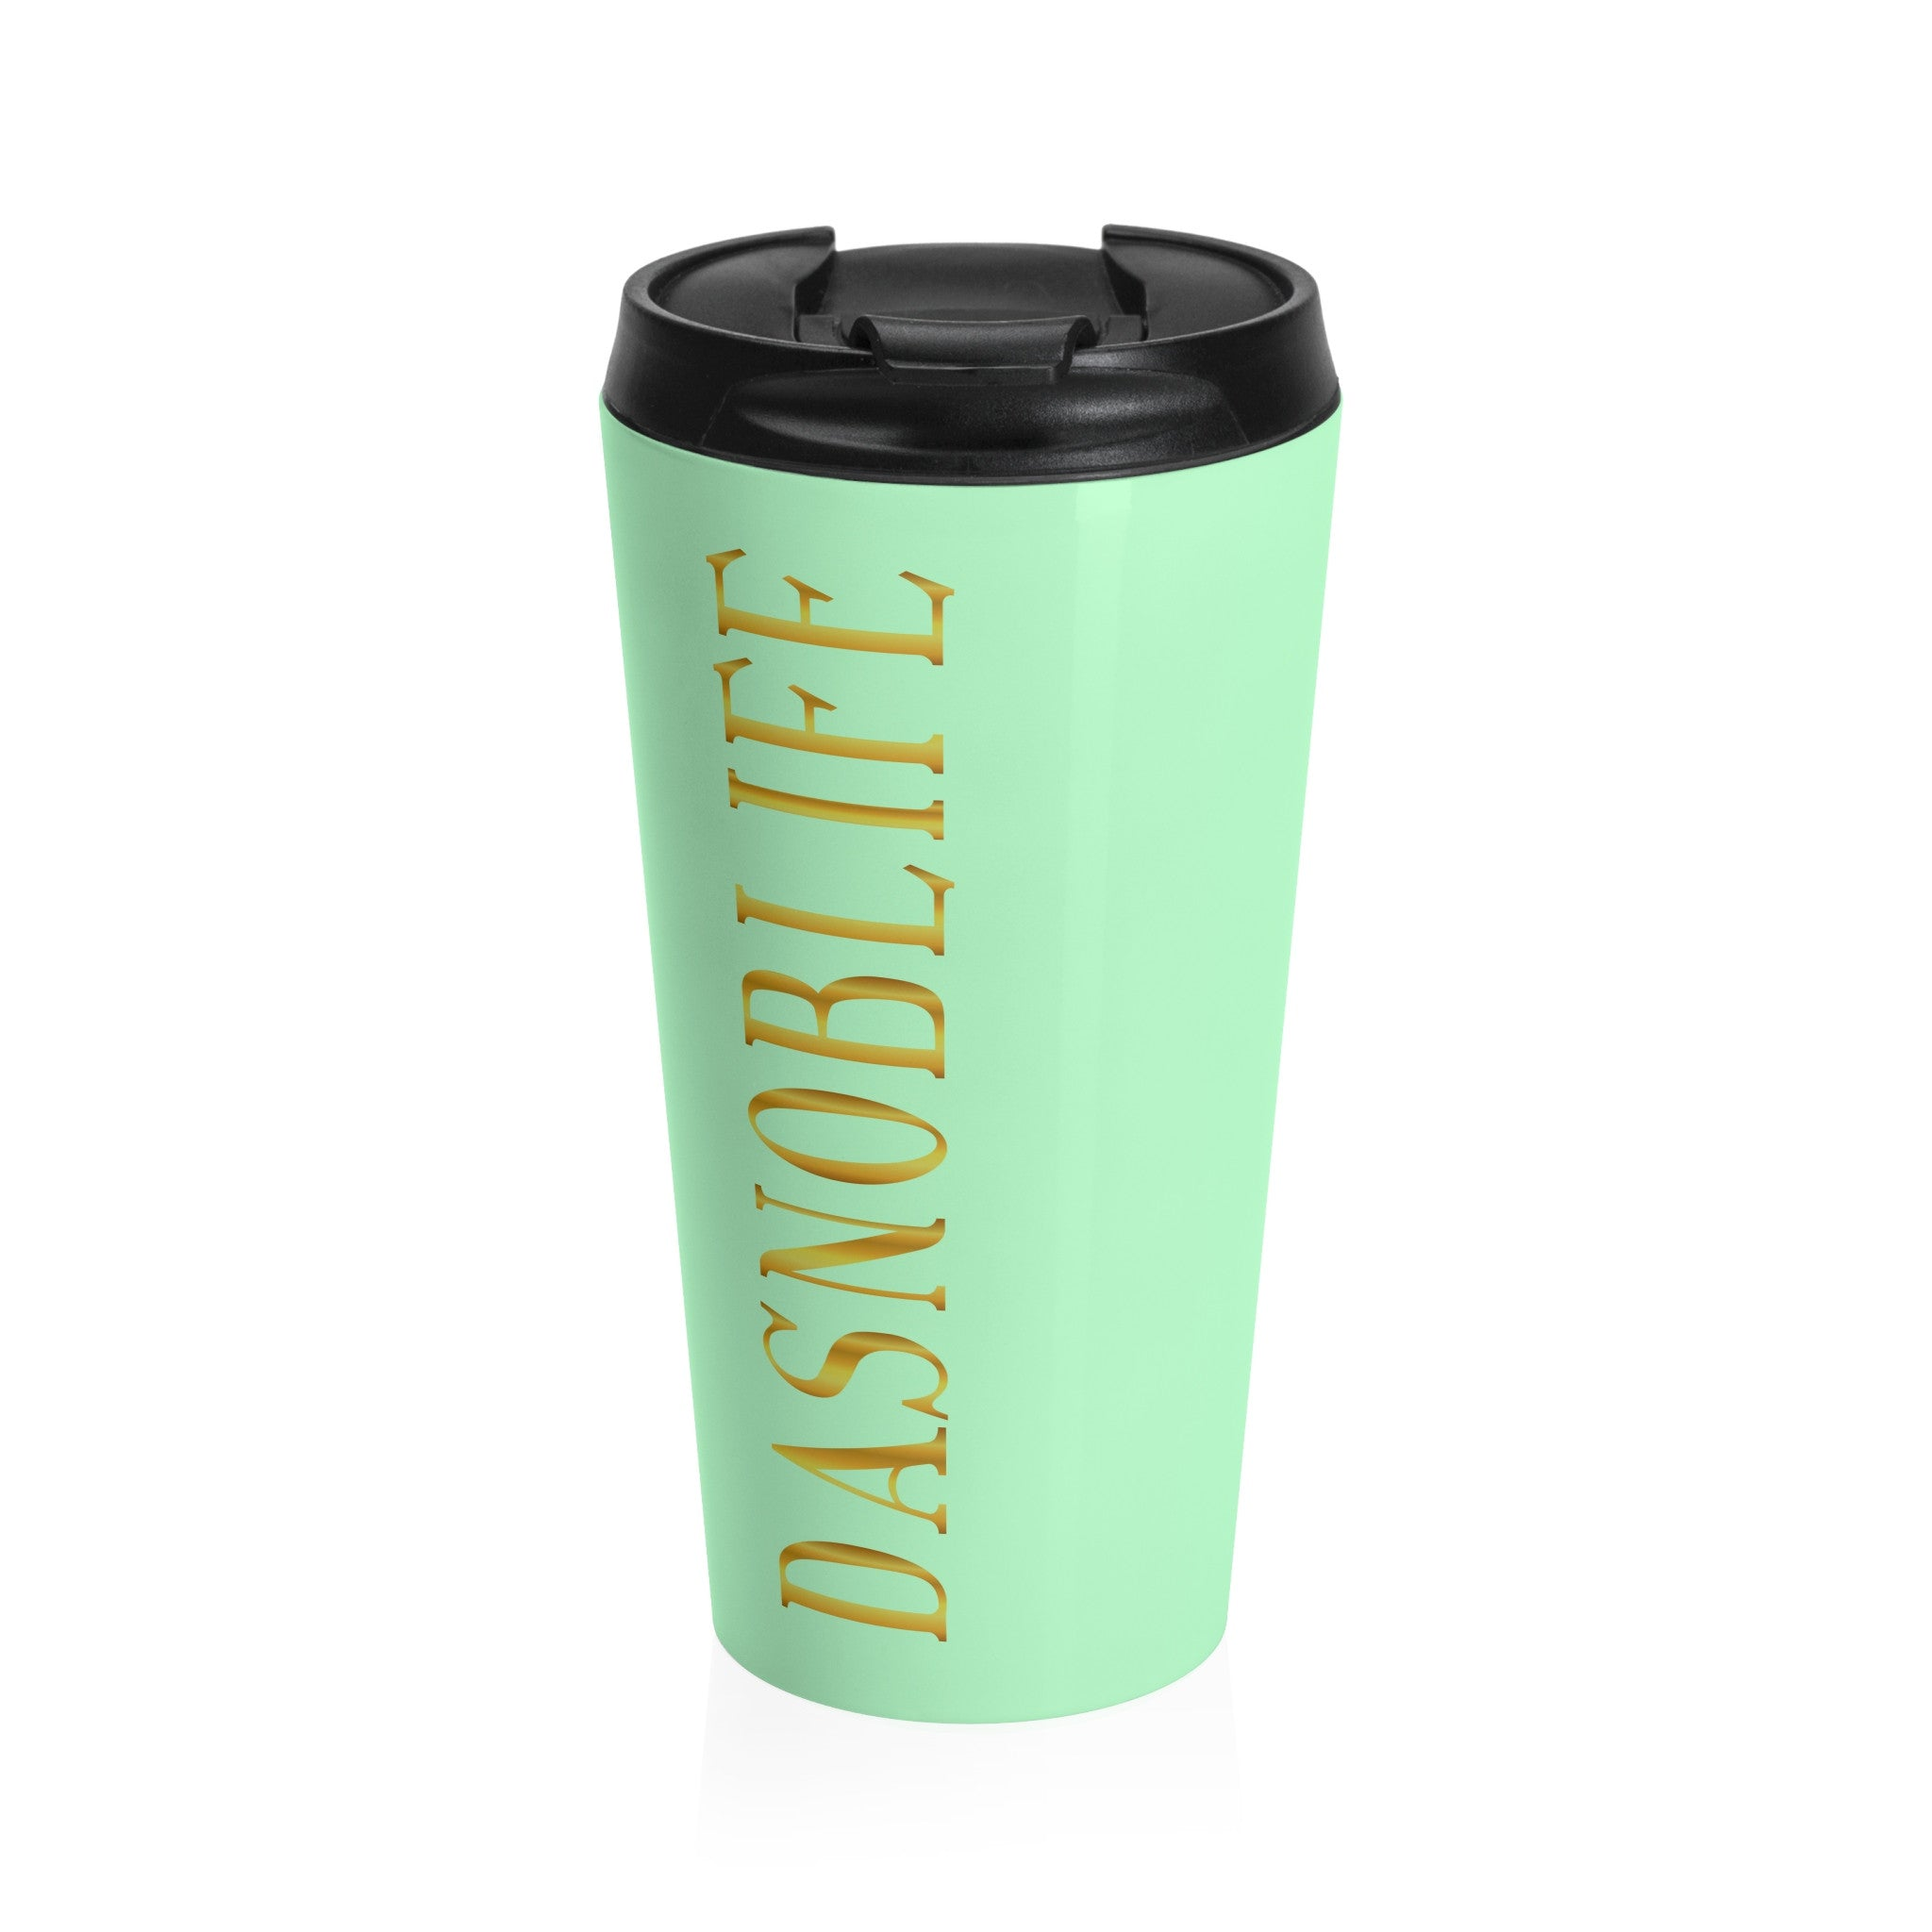 DASNOBLIFE Stainless Steel Travel Mug